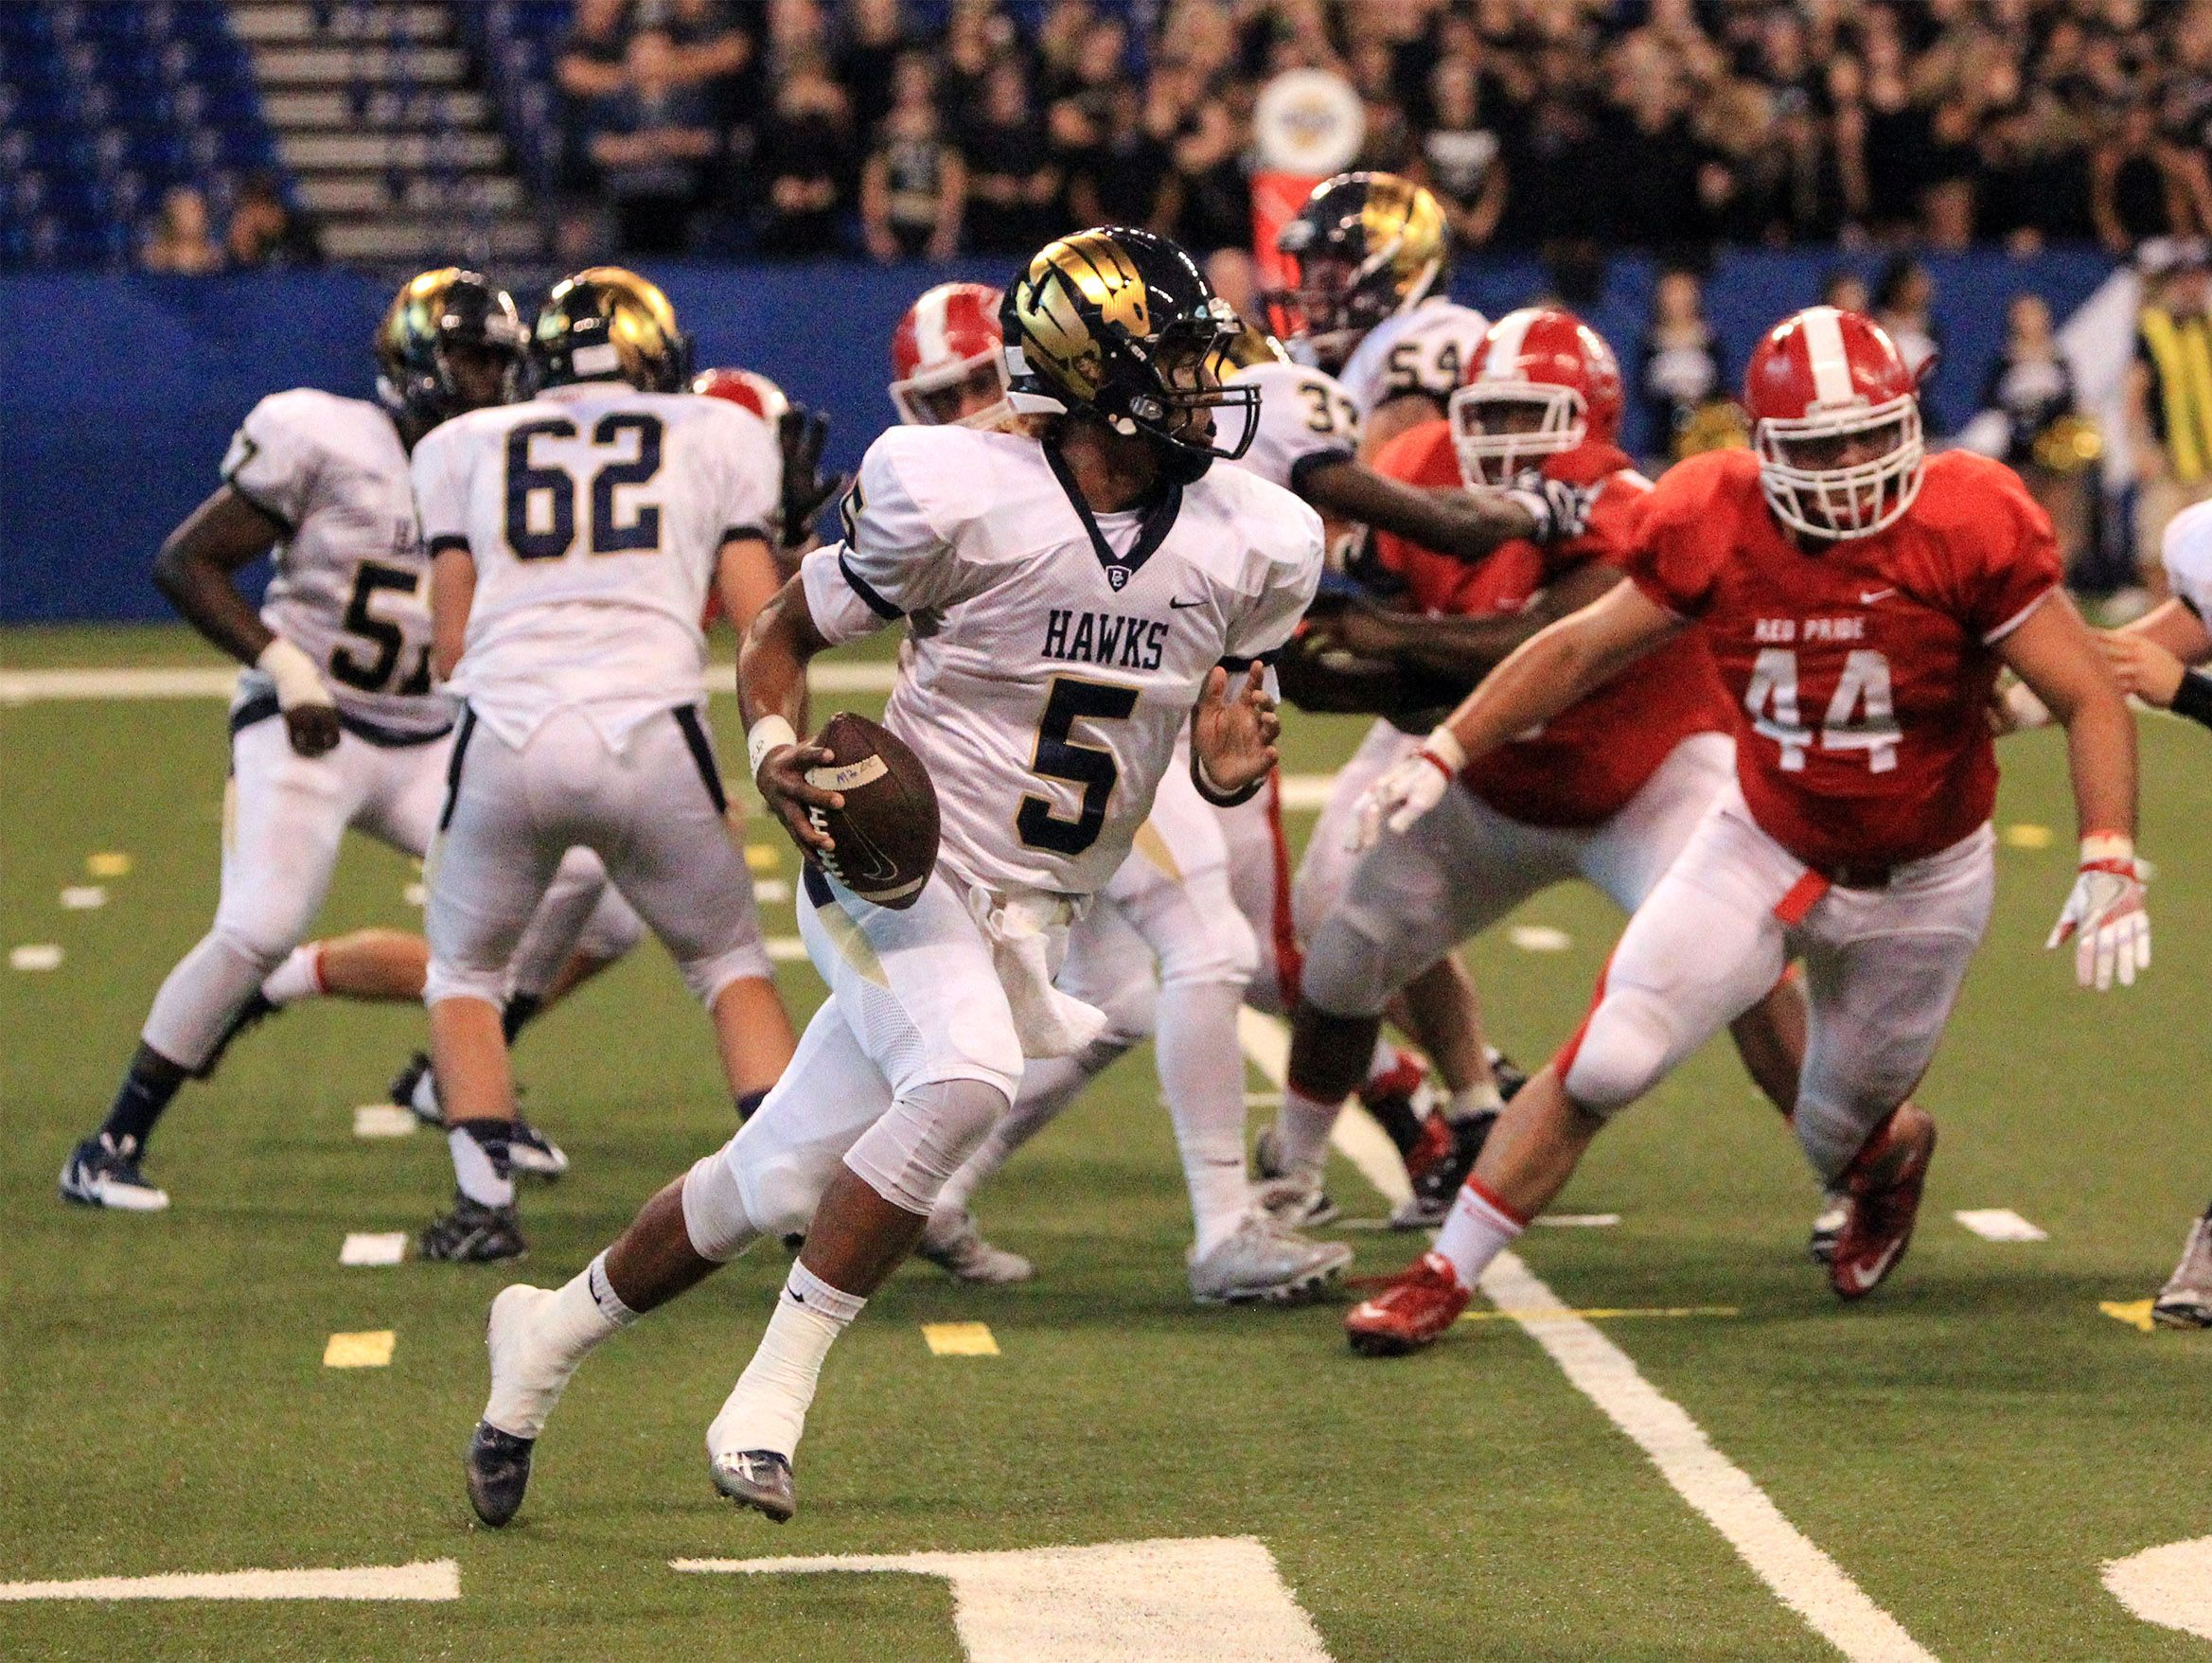 Decatur Central's Bryce Jefferson threw for 259 yards and six touchdowns in the first half against Franklin.